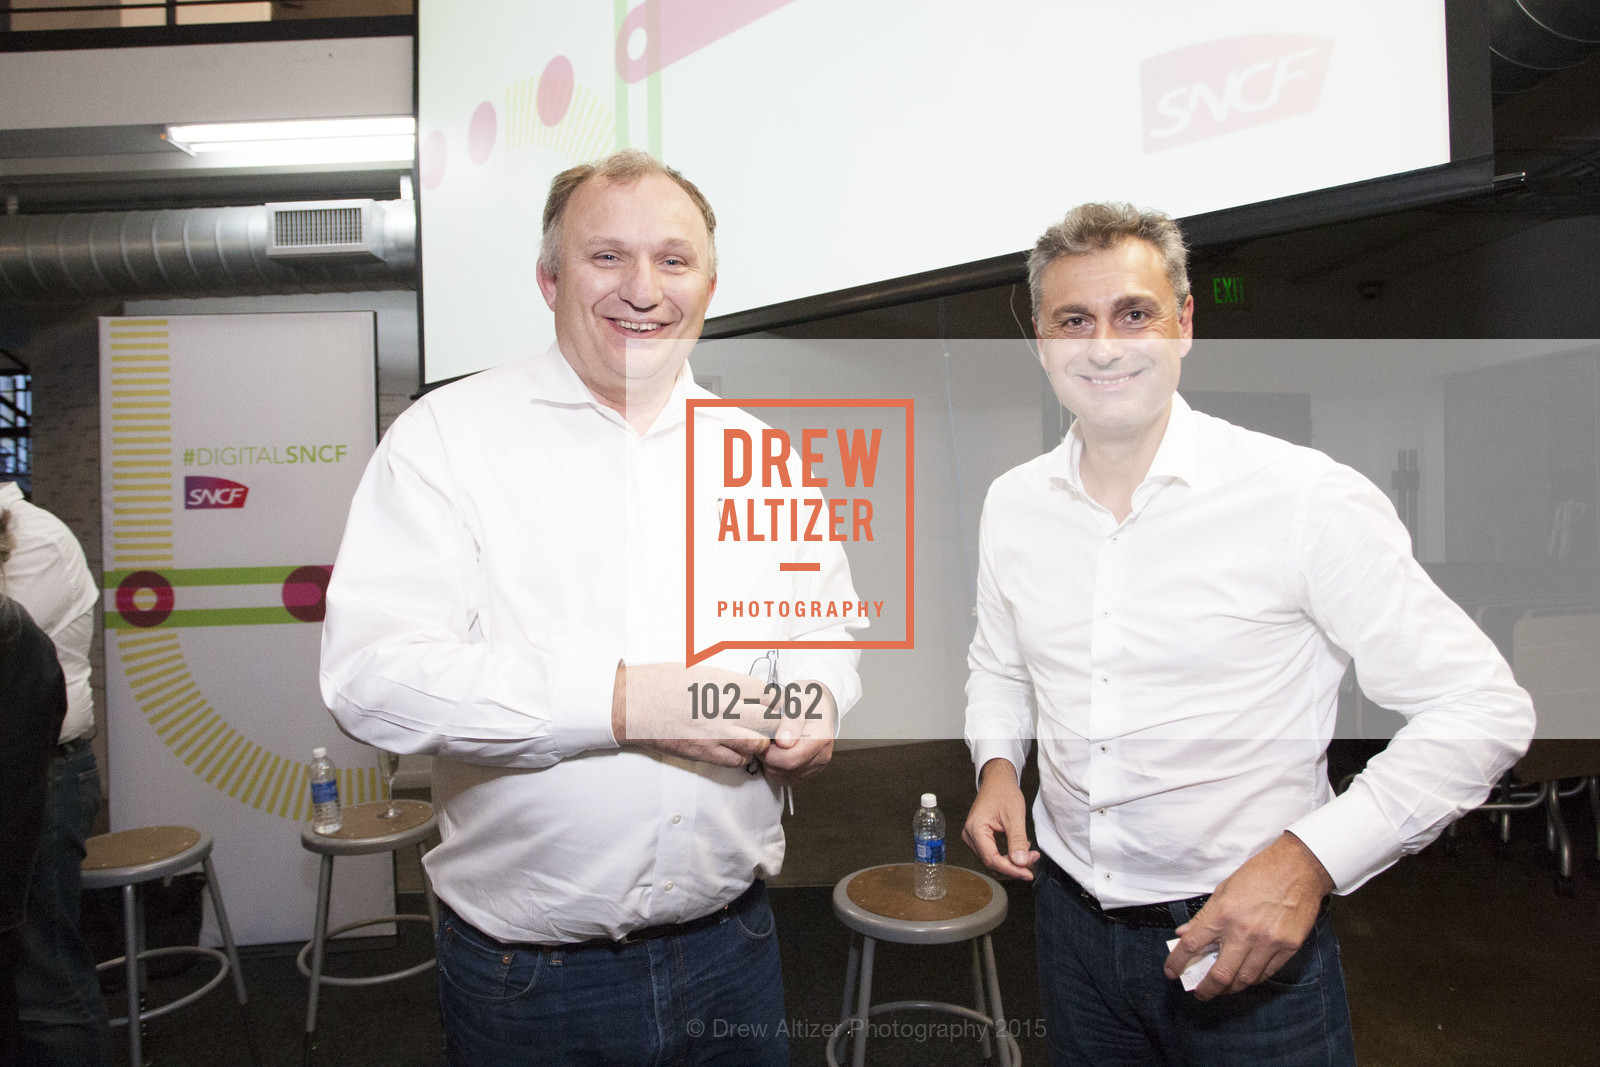 Top Picks, Inauguration of SNCF Innovation Lab, August 26th, 2015, Photo,Drew Altizer, Drew Altizer Photography, full-service agency, private events, San Francisco photographer, photographer california